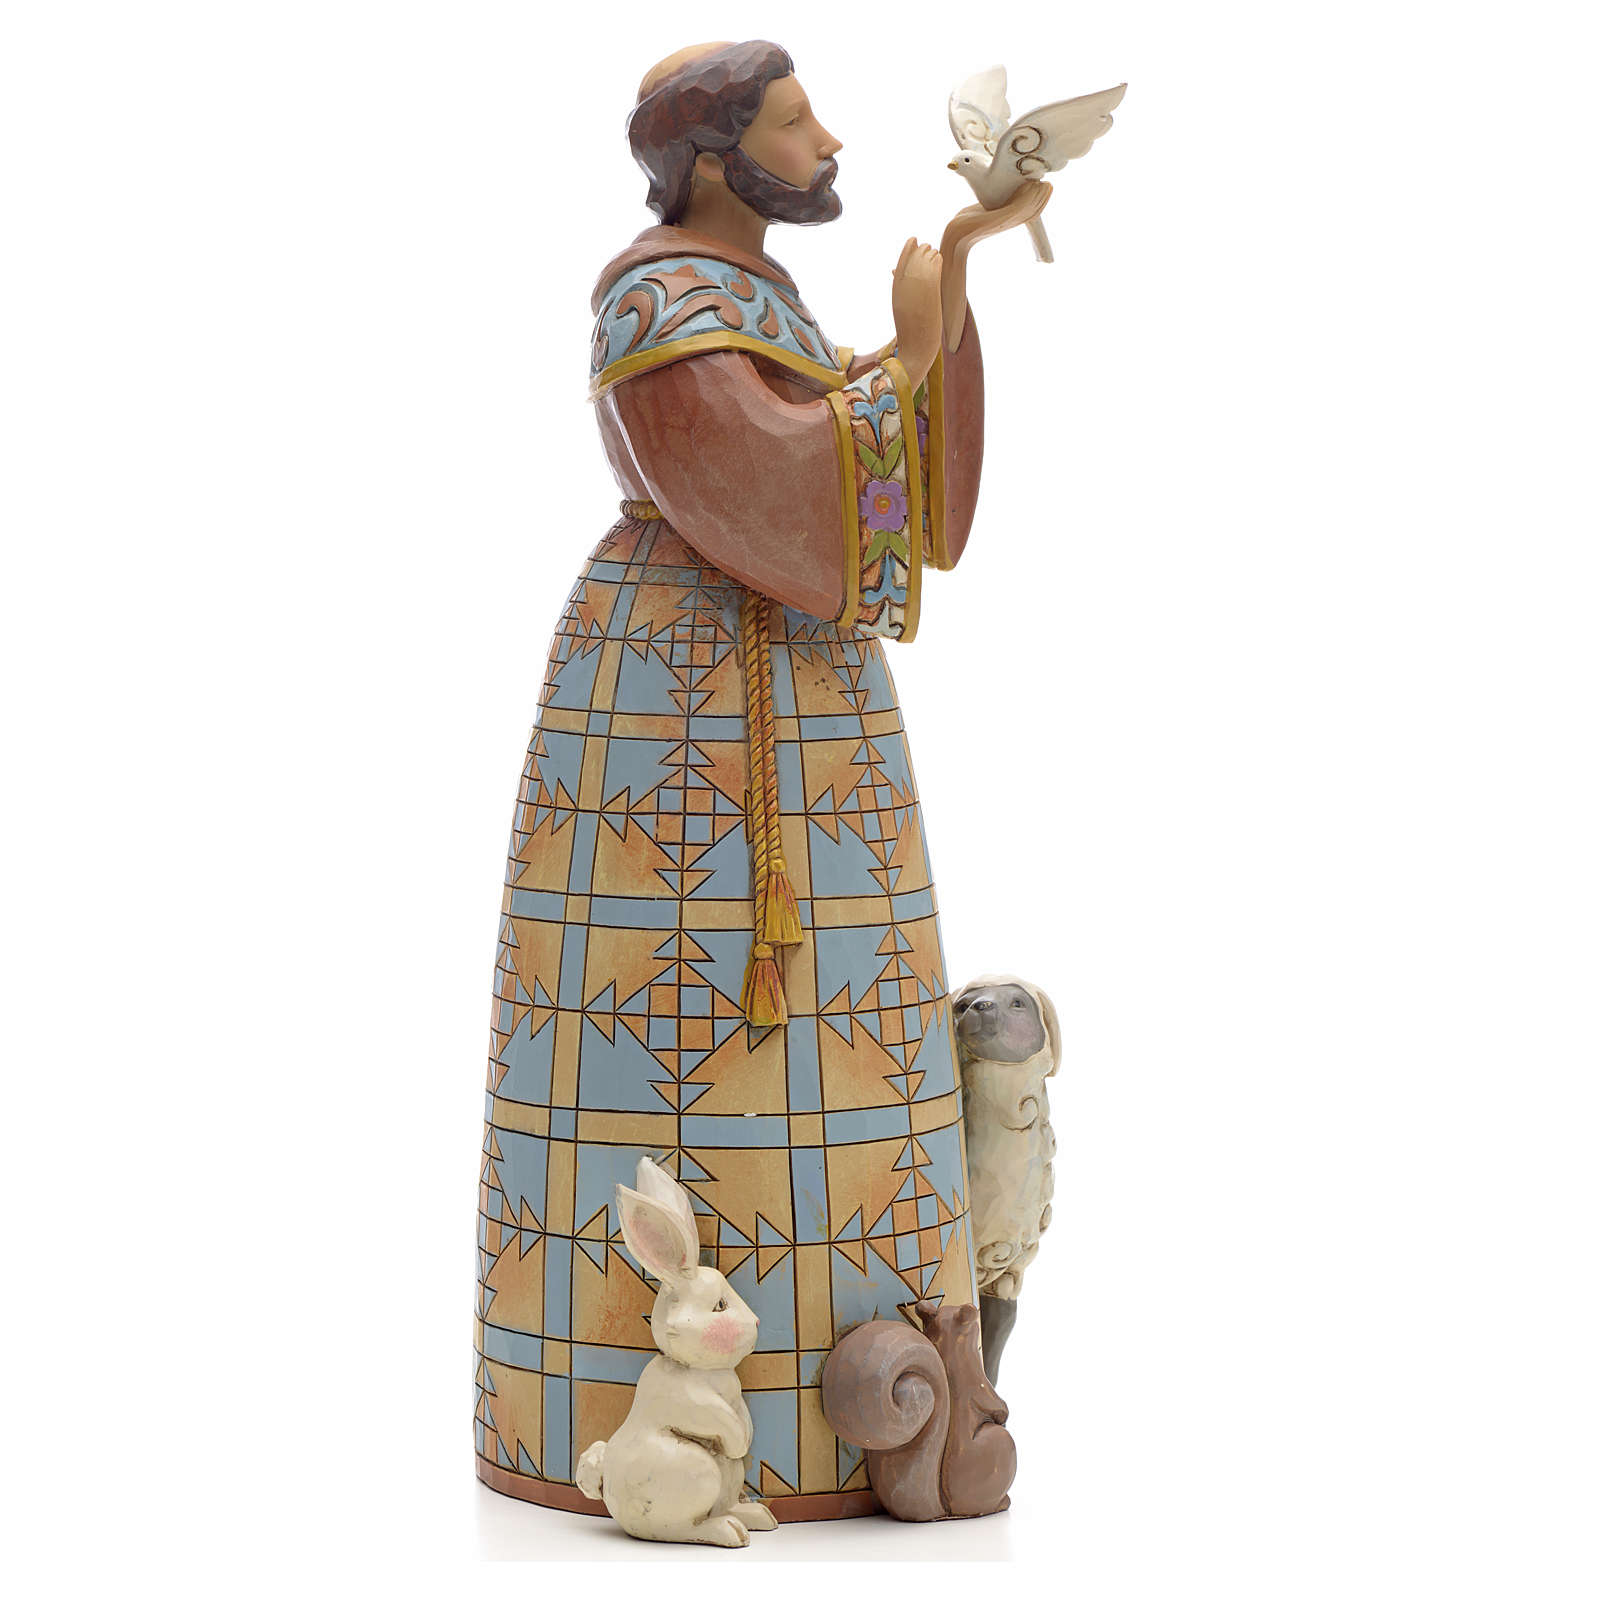 Saint Francis figurine by Jim Shore 4